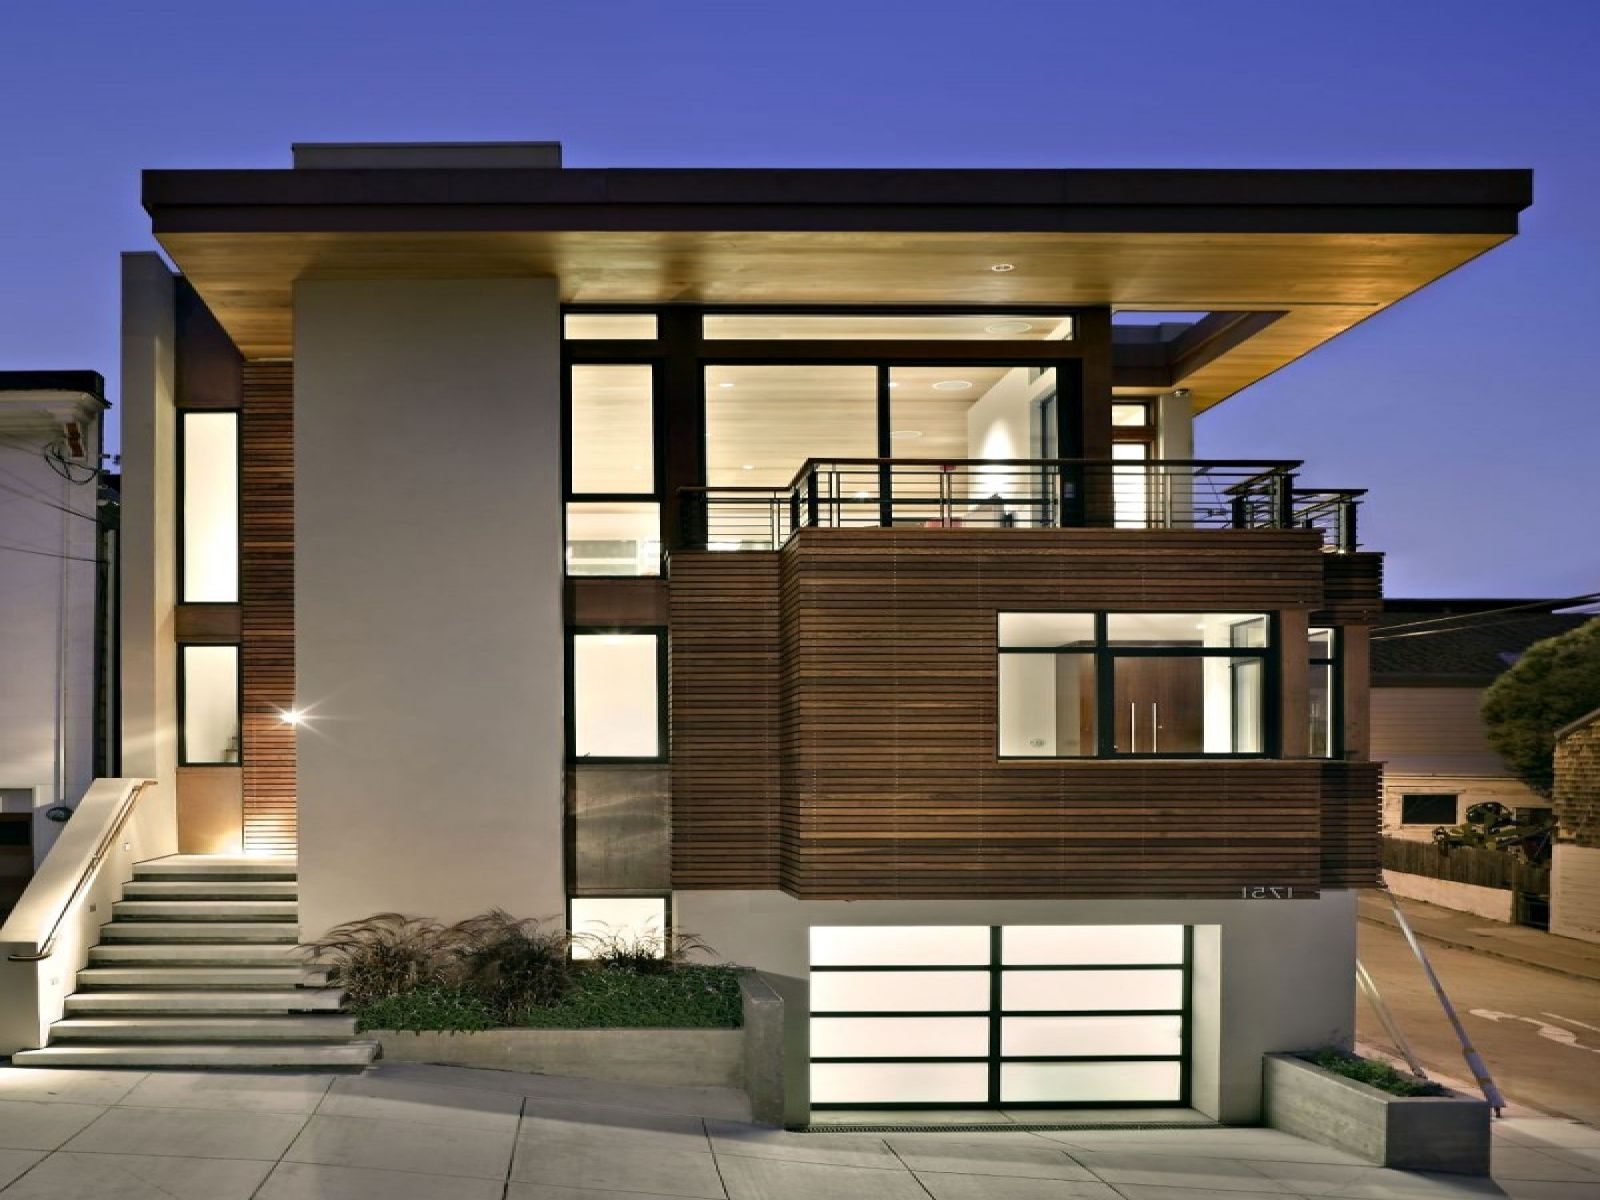 Modern minimalist house beautiful exterior design for for House design interior and exterior